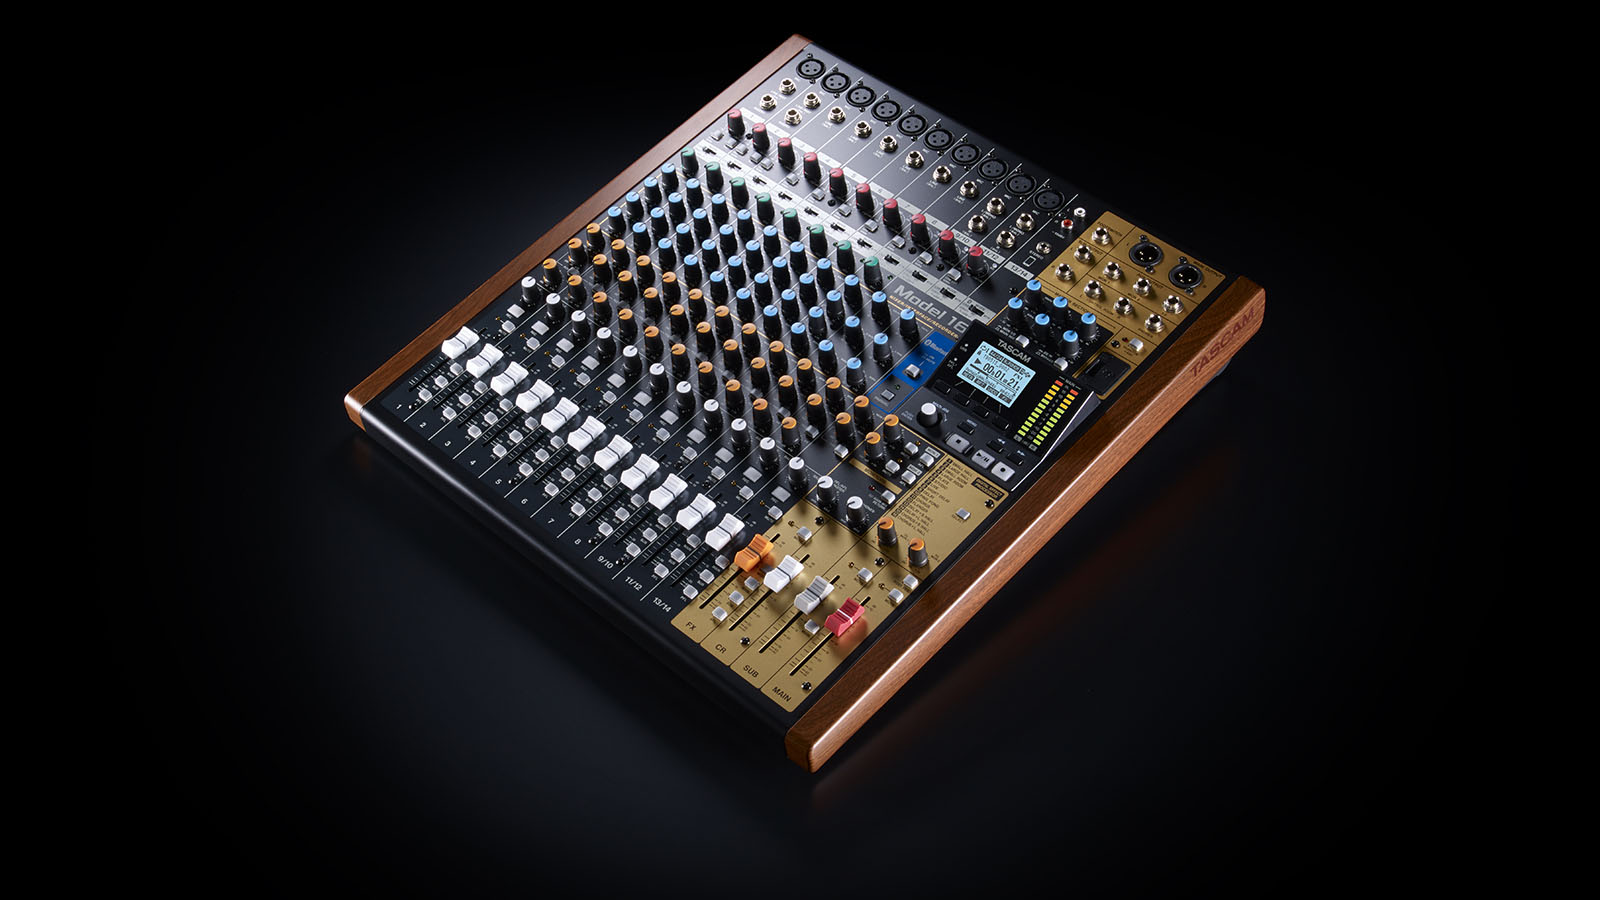 Tascam's Model 16 combines analogue feel with digital recording